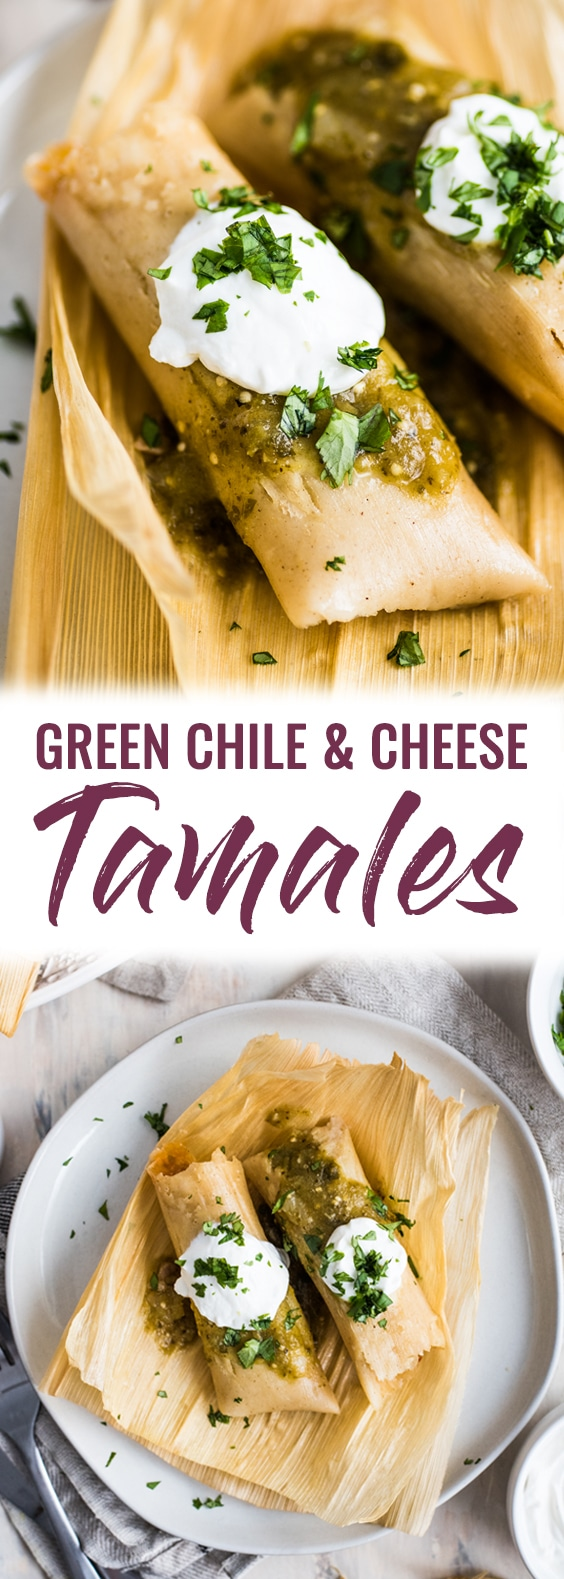 A Mexican classic, these Green Chile and Cheese Vegetarian Tamales are filled with roasted poblano peppers and spicy pepper jack cheese. Also gluten free!